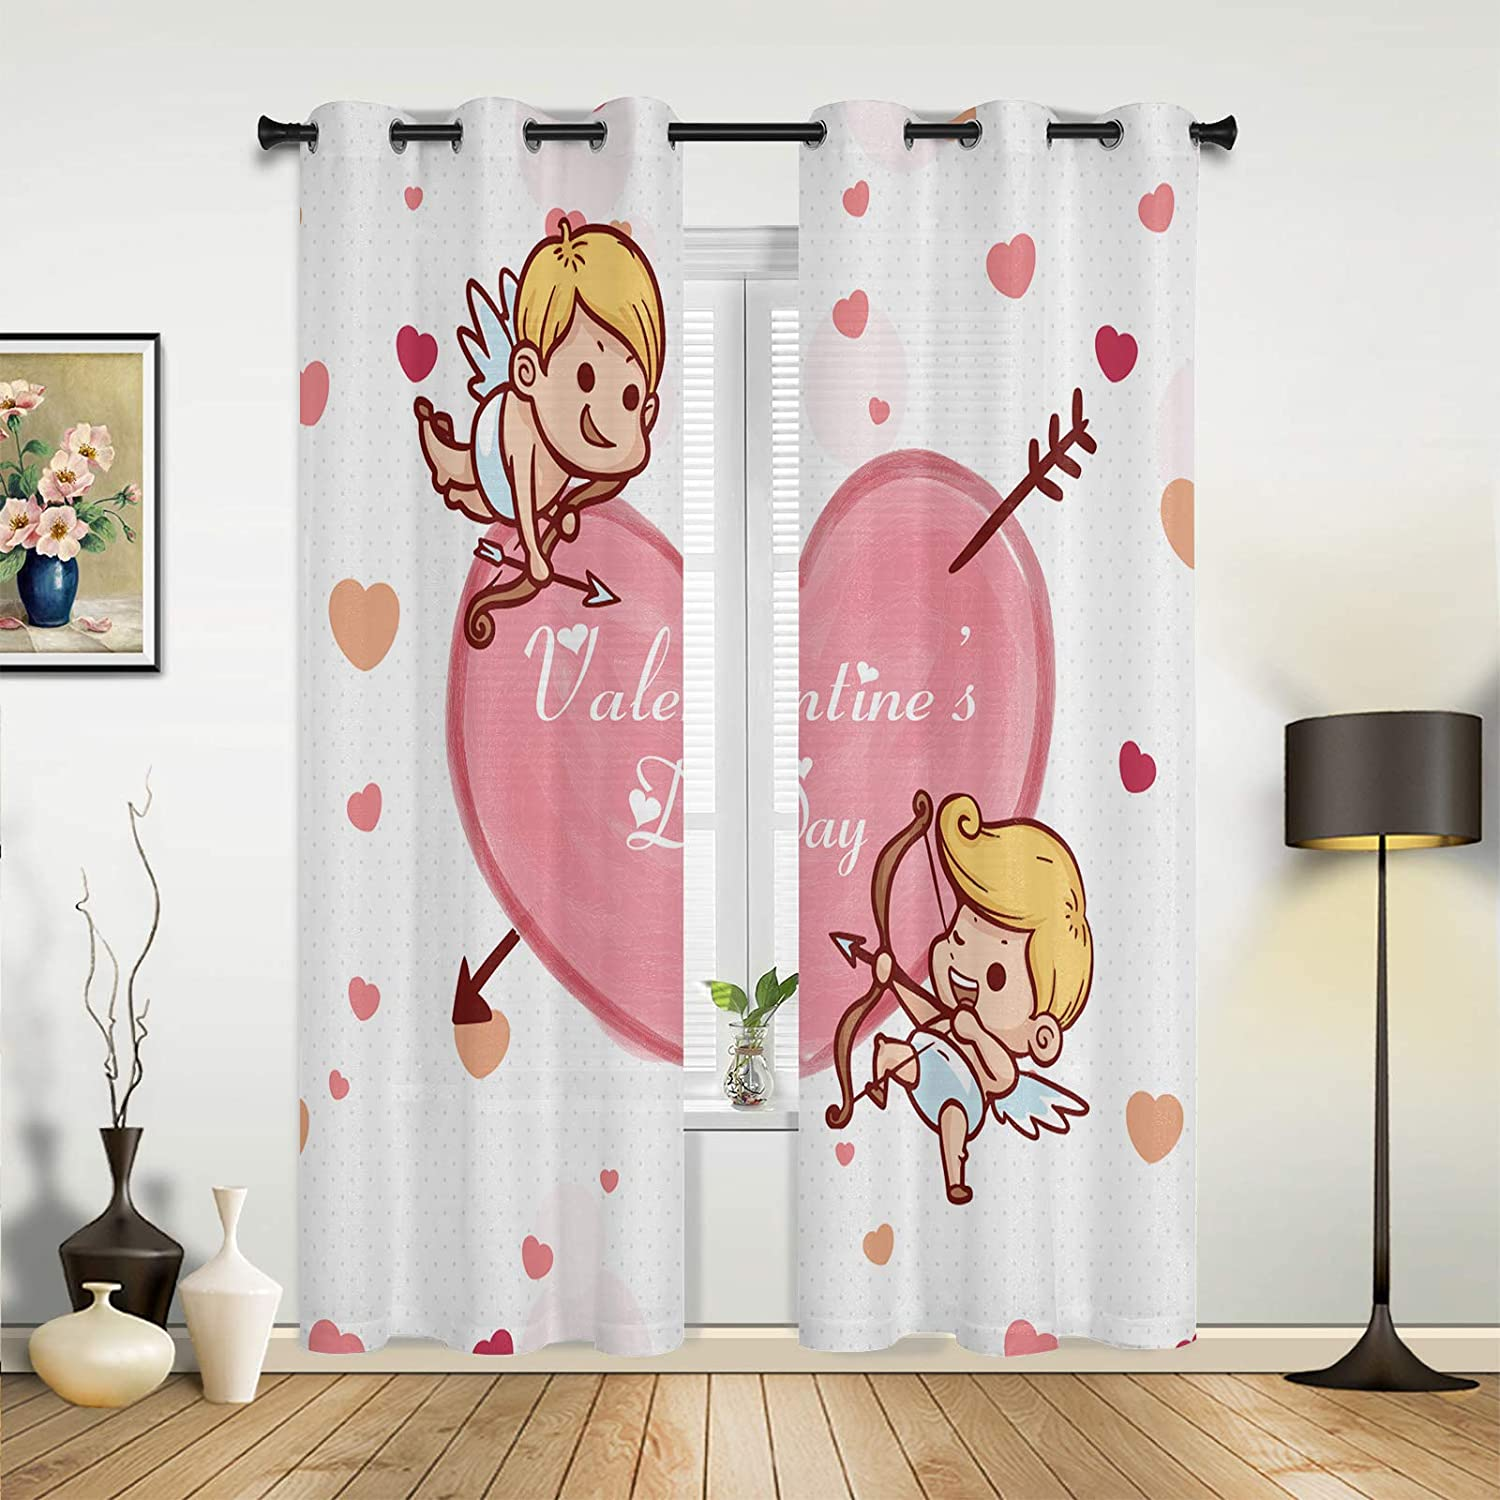 Window Sheer Max 56% OFF Curtains for Bedroom Valentine's low-pricing Day Cu Room Living